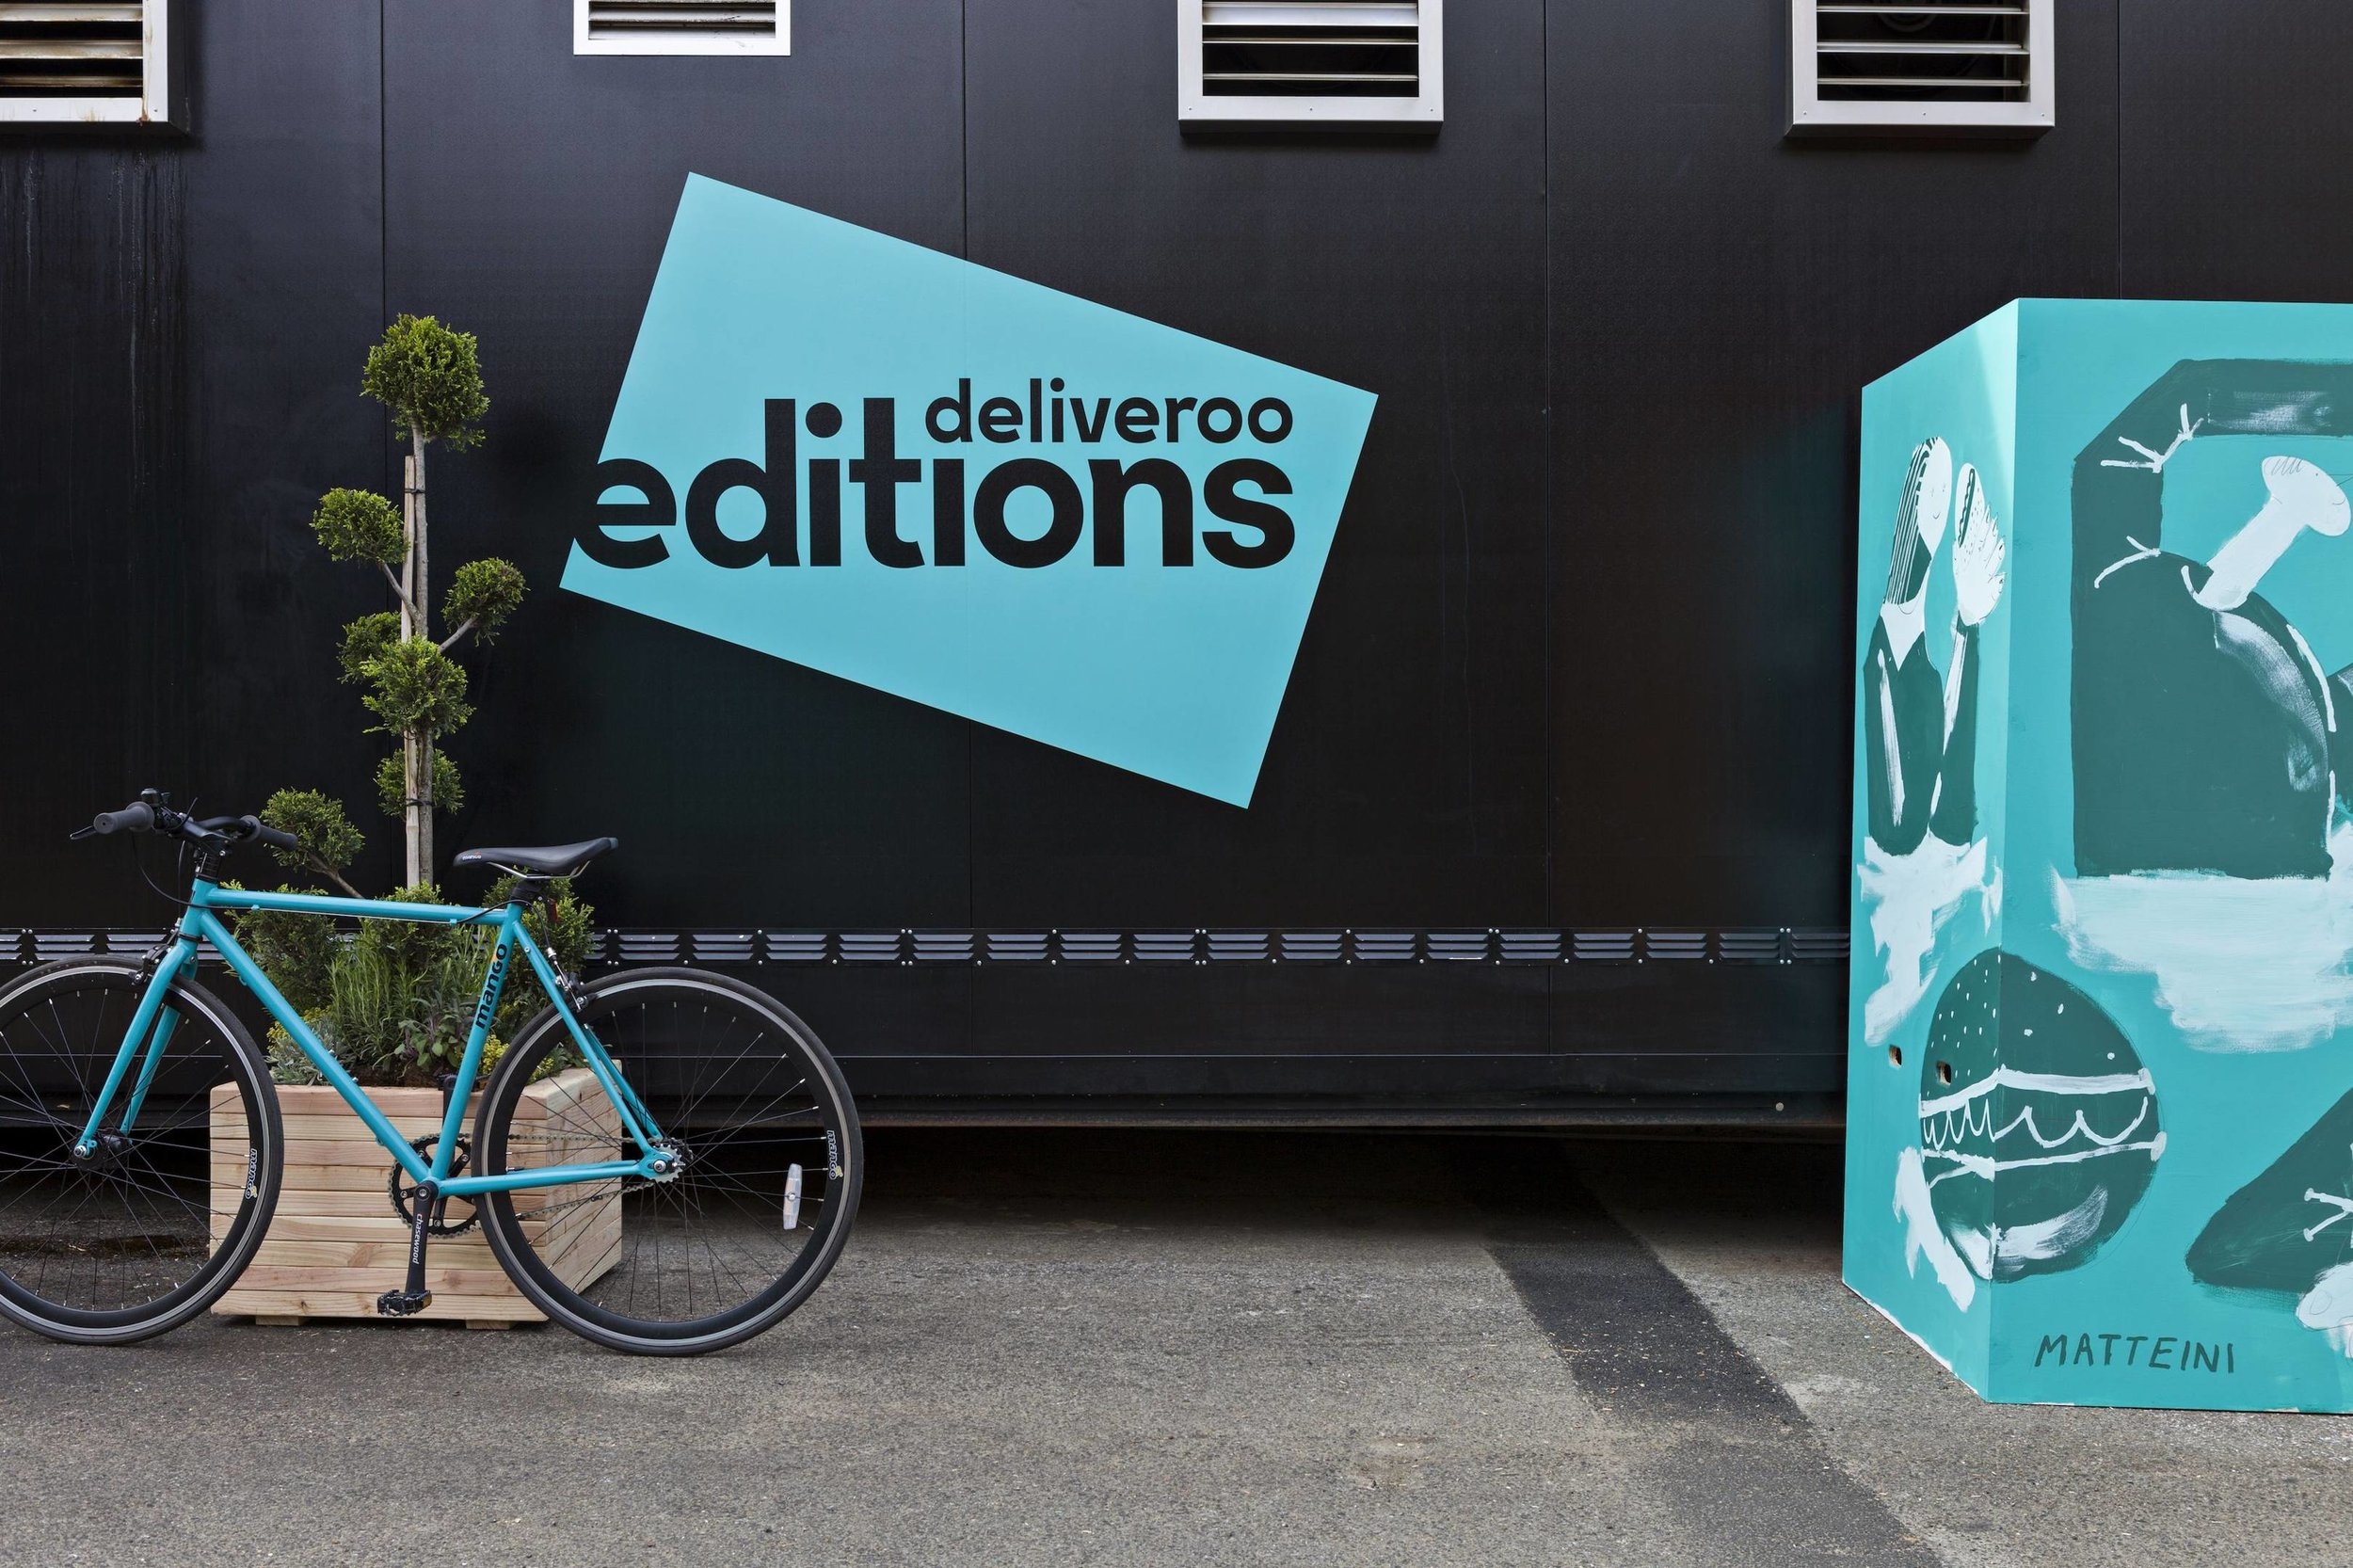 deliveroo-editions-2.jpg